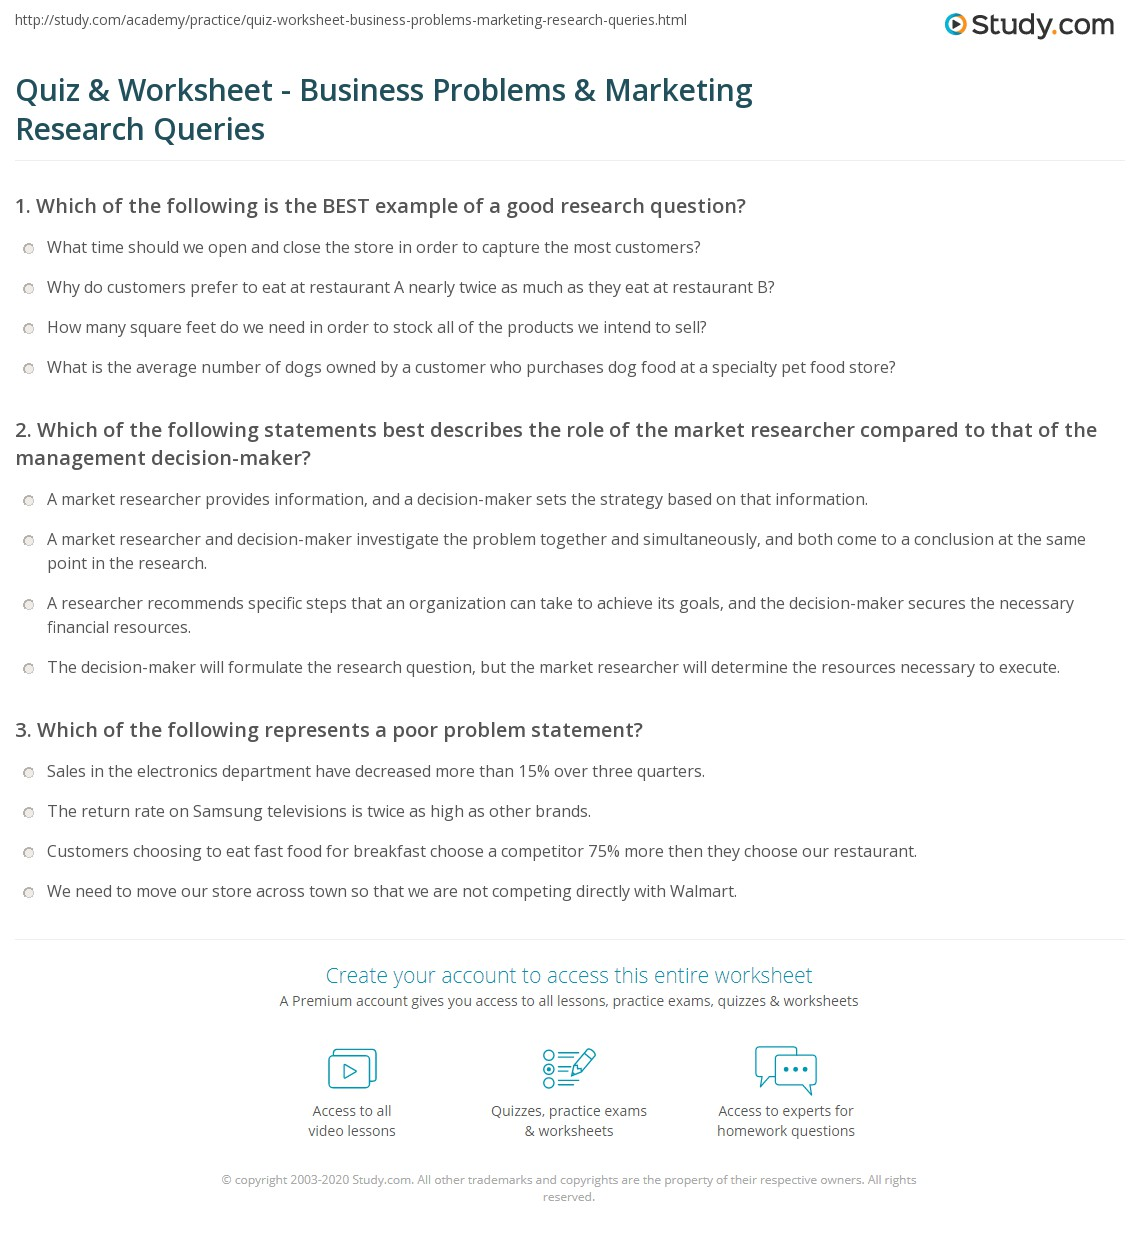 Quiz Worksheet Business Problems Marketing Research Queries